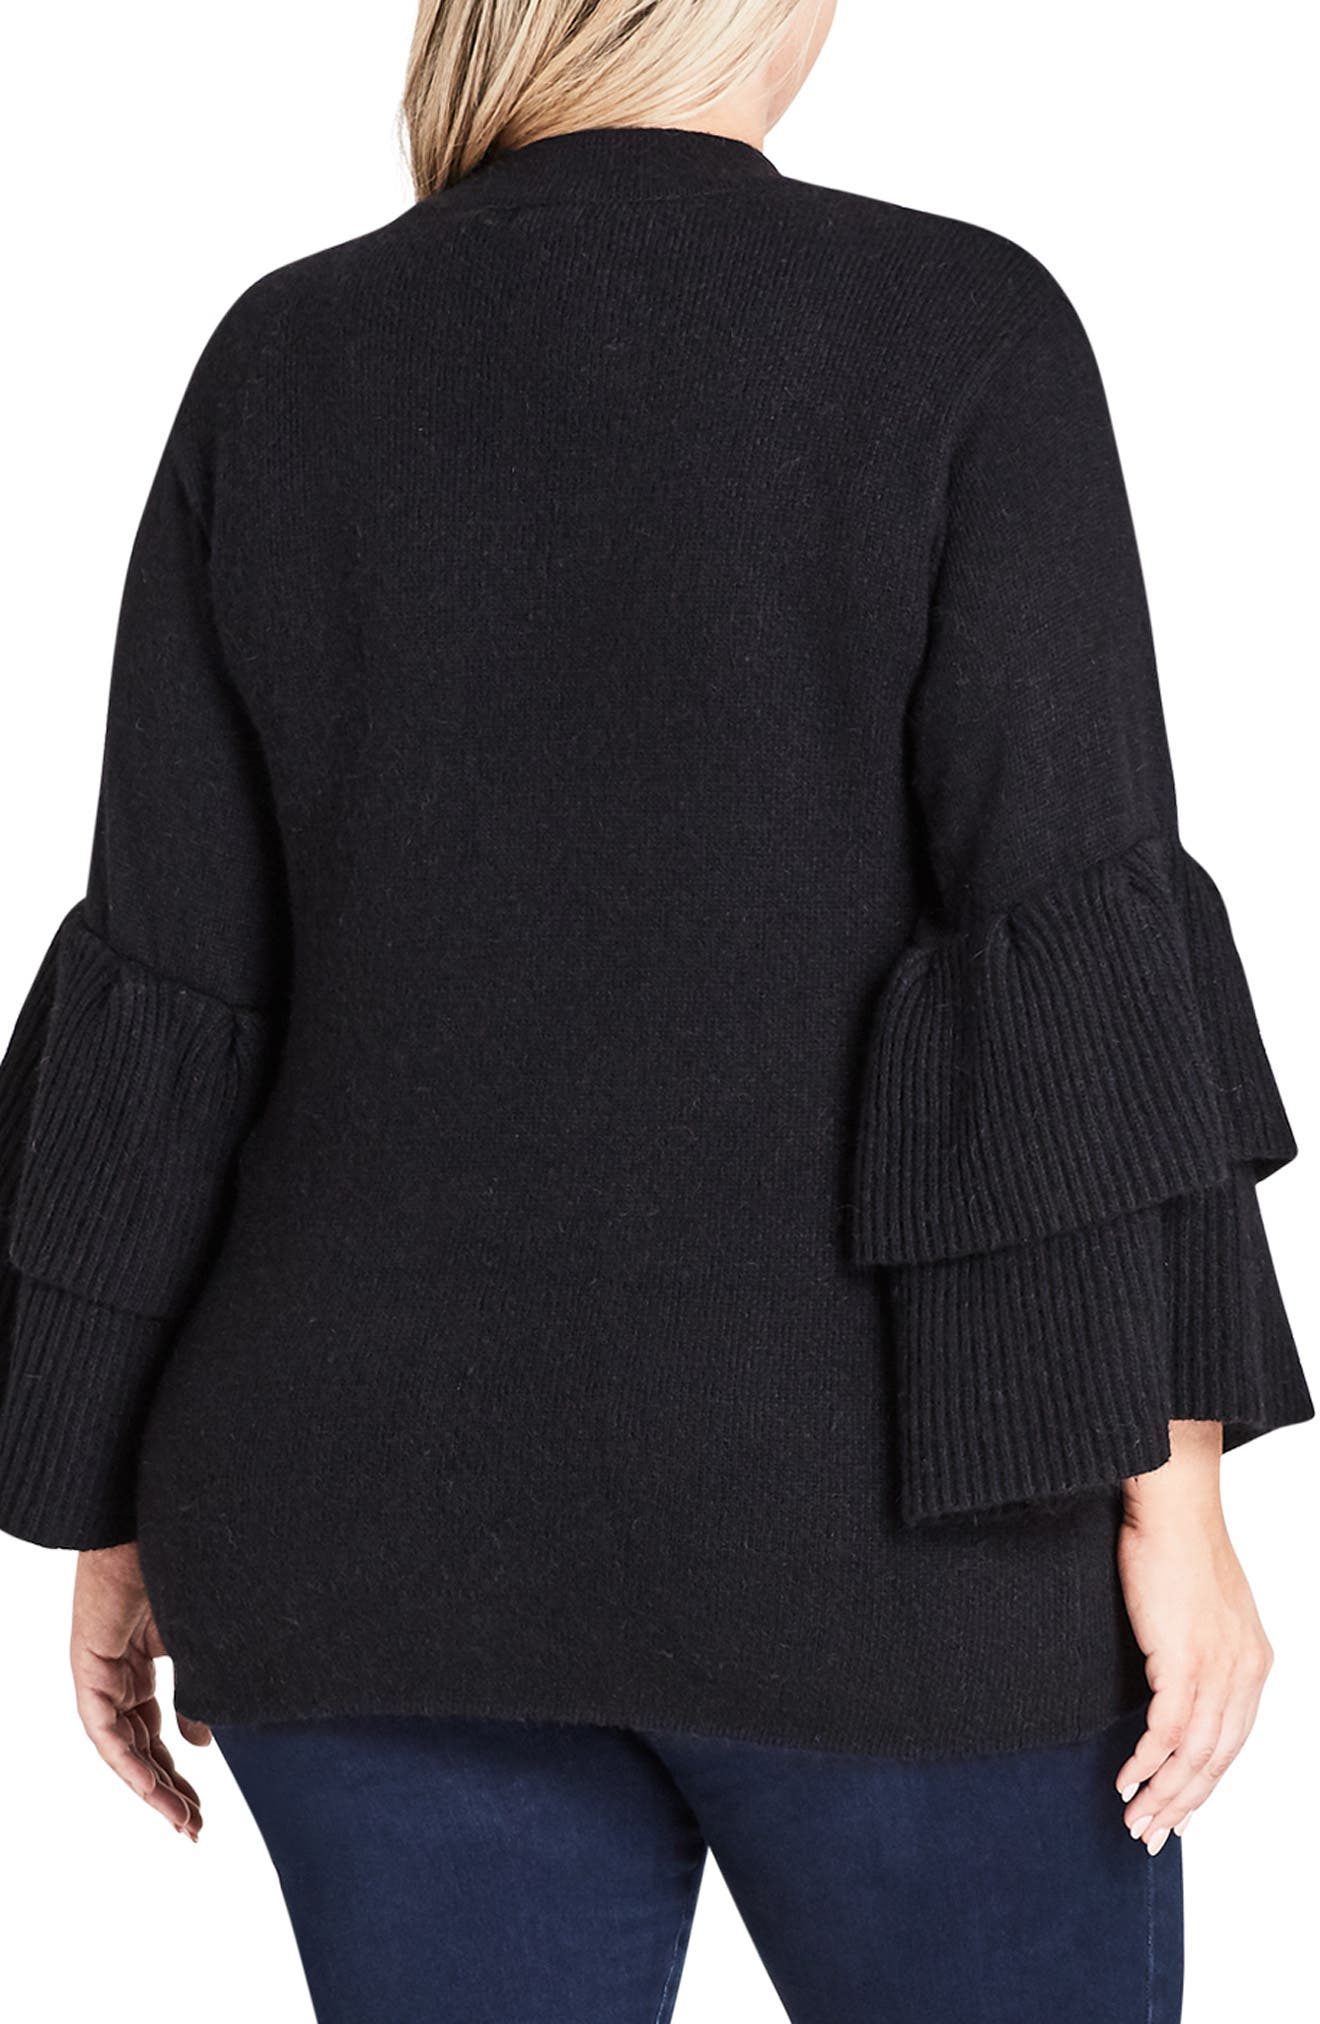 CITY CHIC, Tiered Sleeve Sweater, Alternate thumbnail 2, color, BLACK